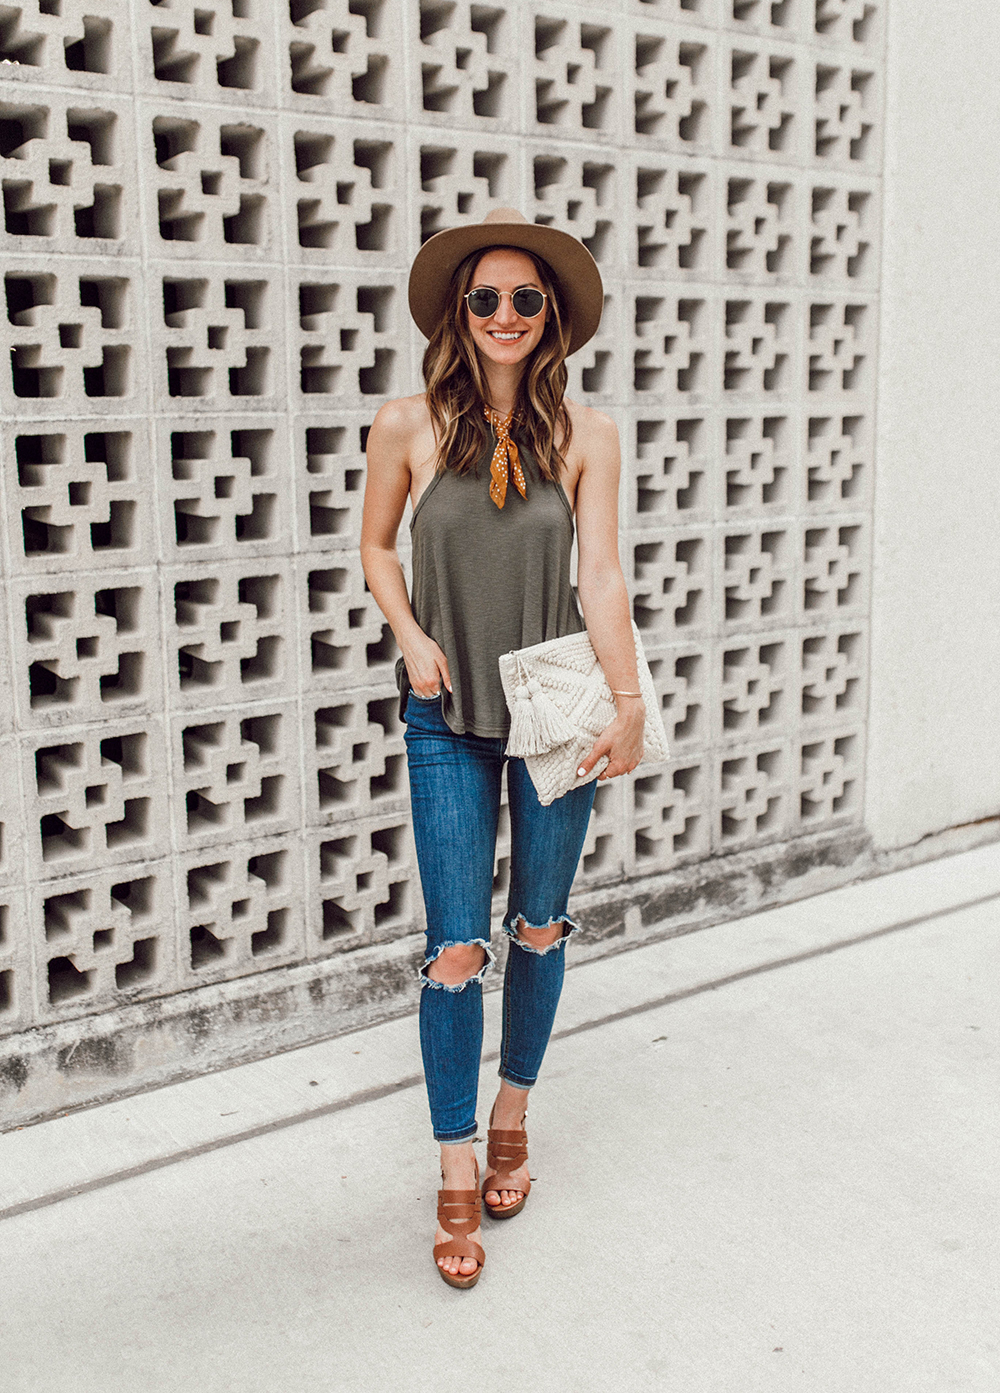 livvyland-blog-olivia-watson-austin-texas-fashion-style-blogger-sole-society-tan-sandal-wedges-1